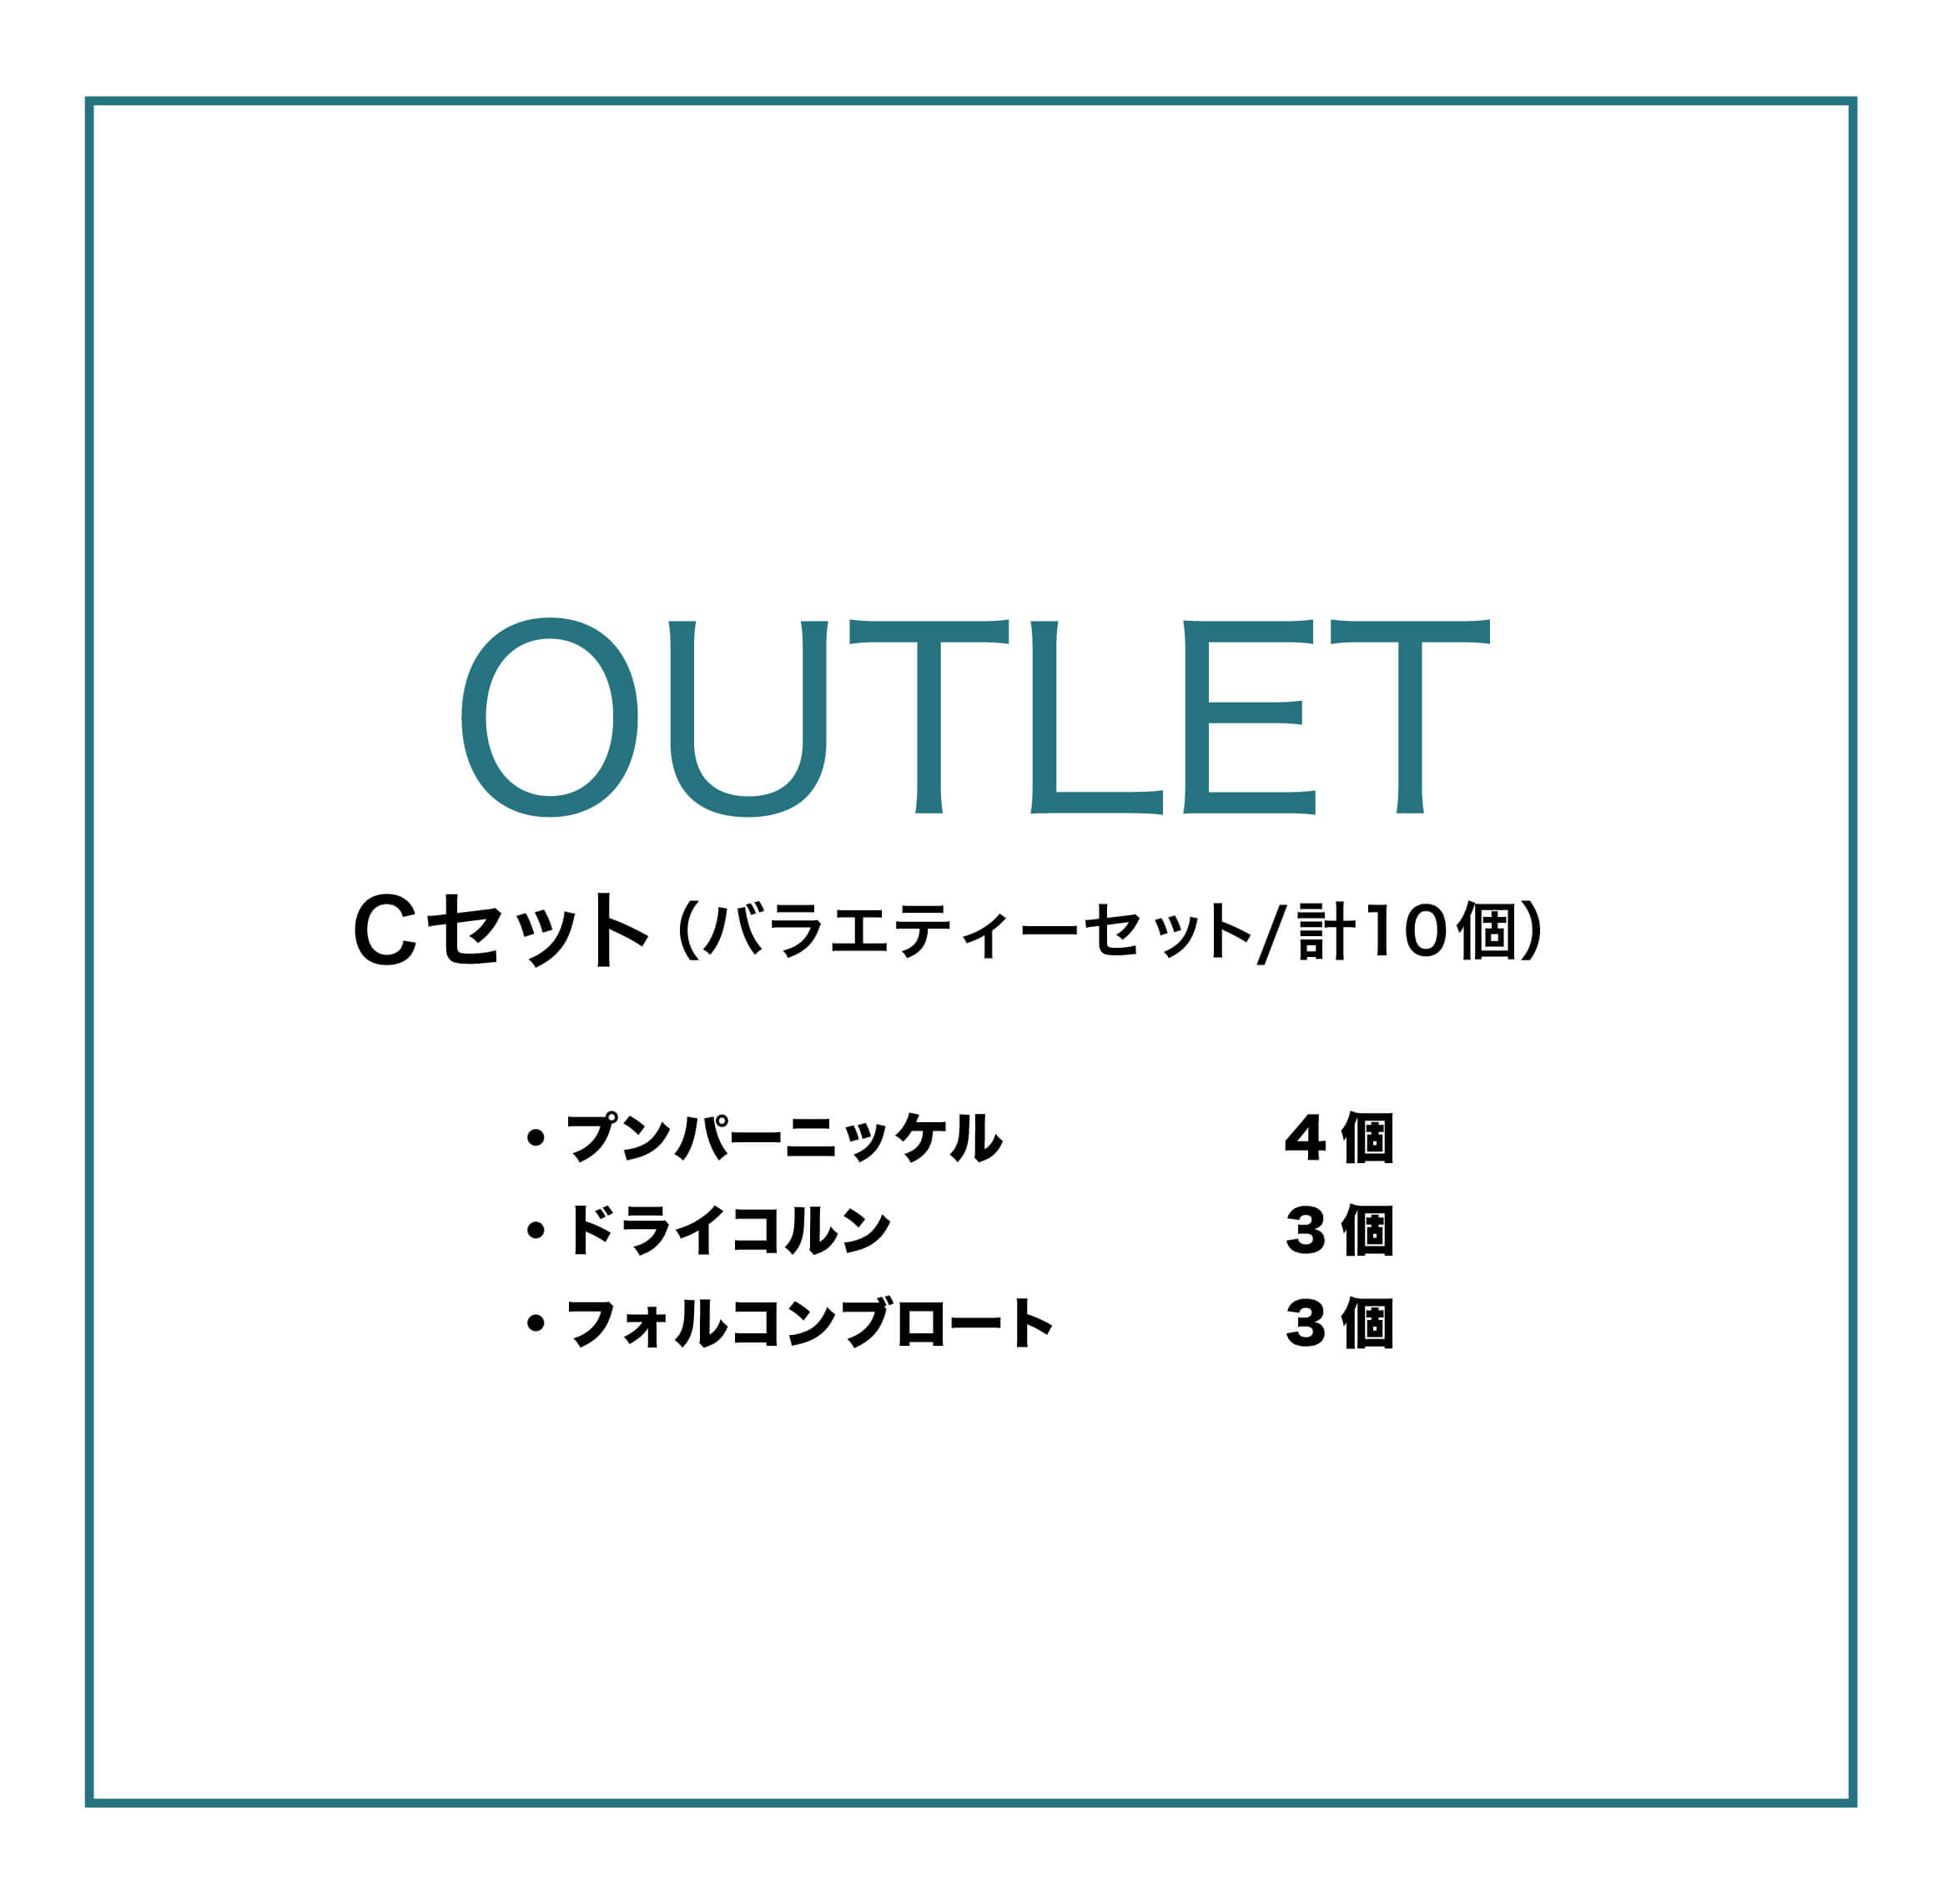 OUTLET_C